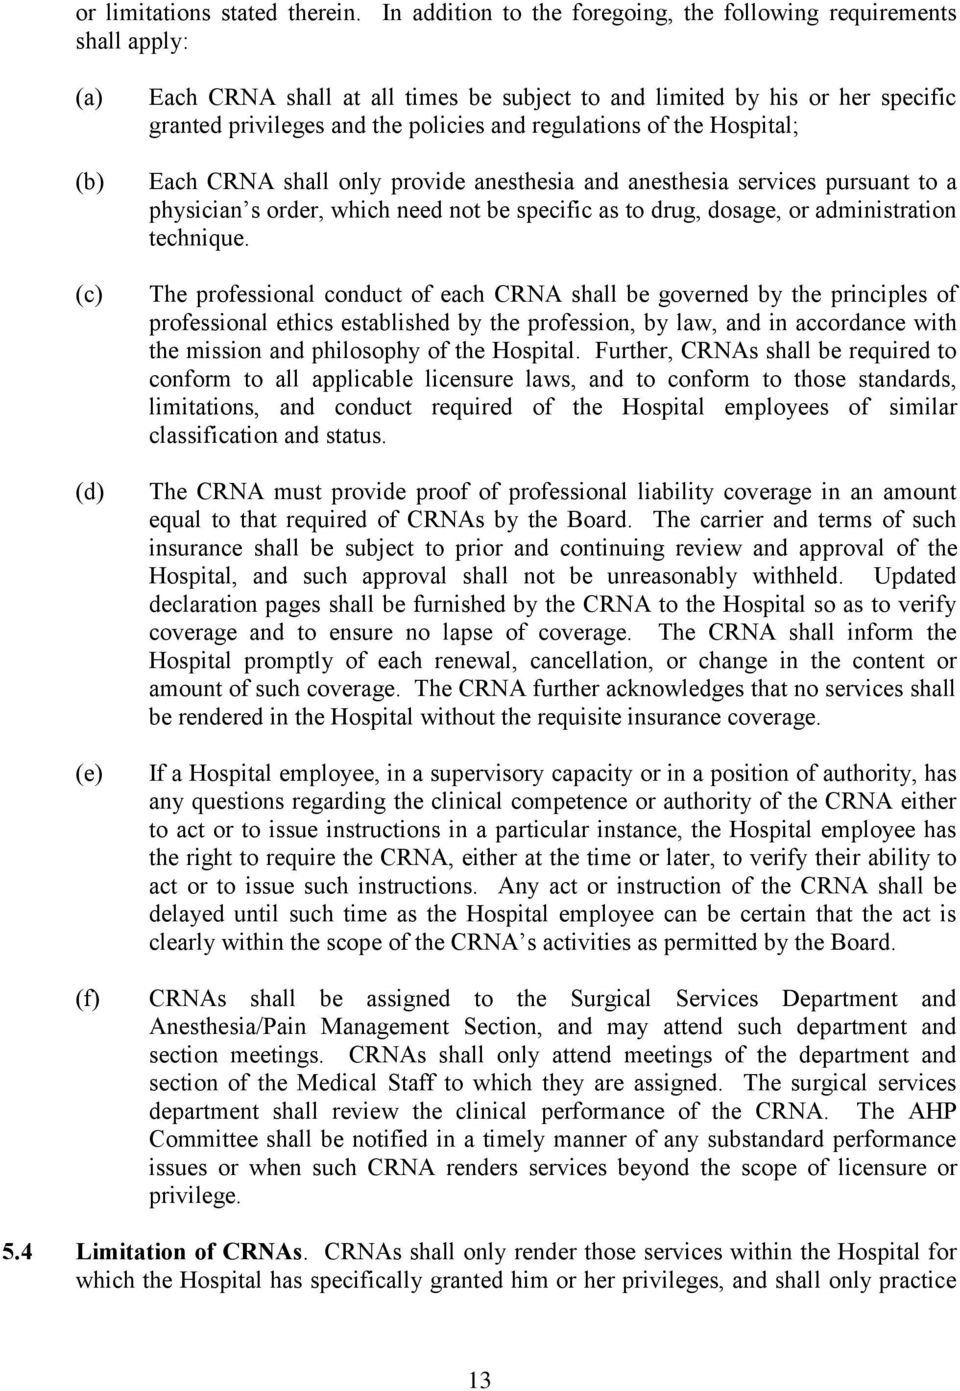 regulations of the Hospital; Each CRNA shall only provide anesthesia and anesthesia services pursuant to a physician s order, which need not be specific as to drug, dosage, or administration